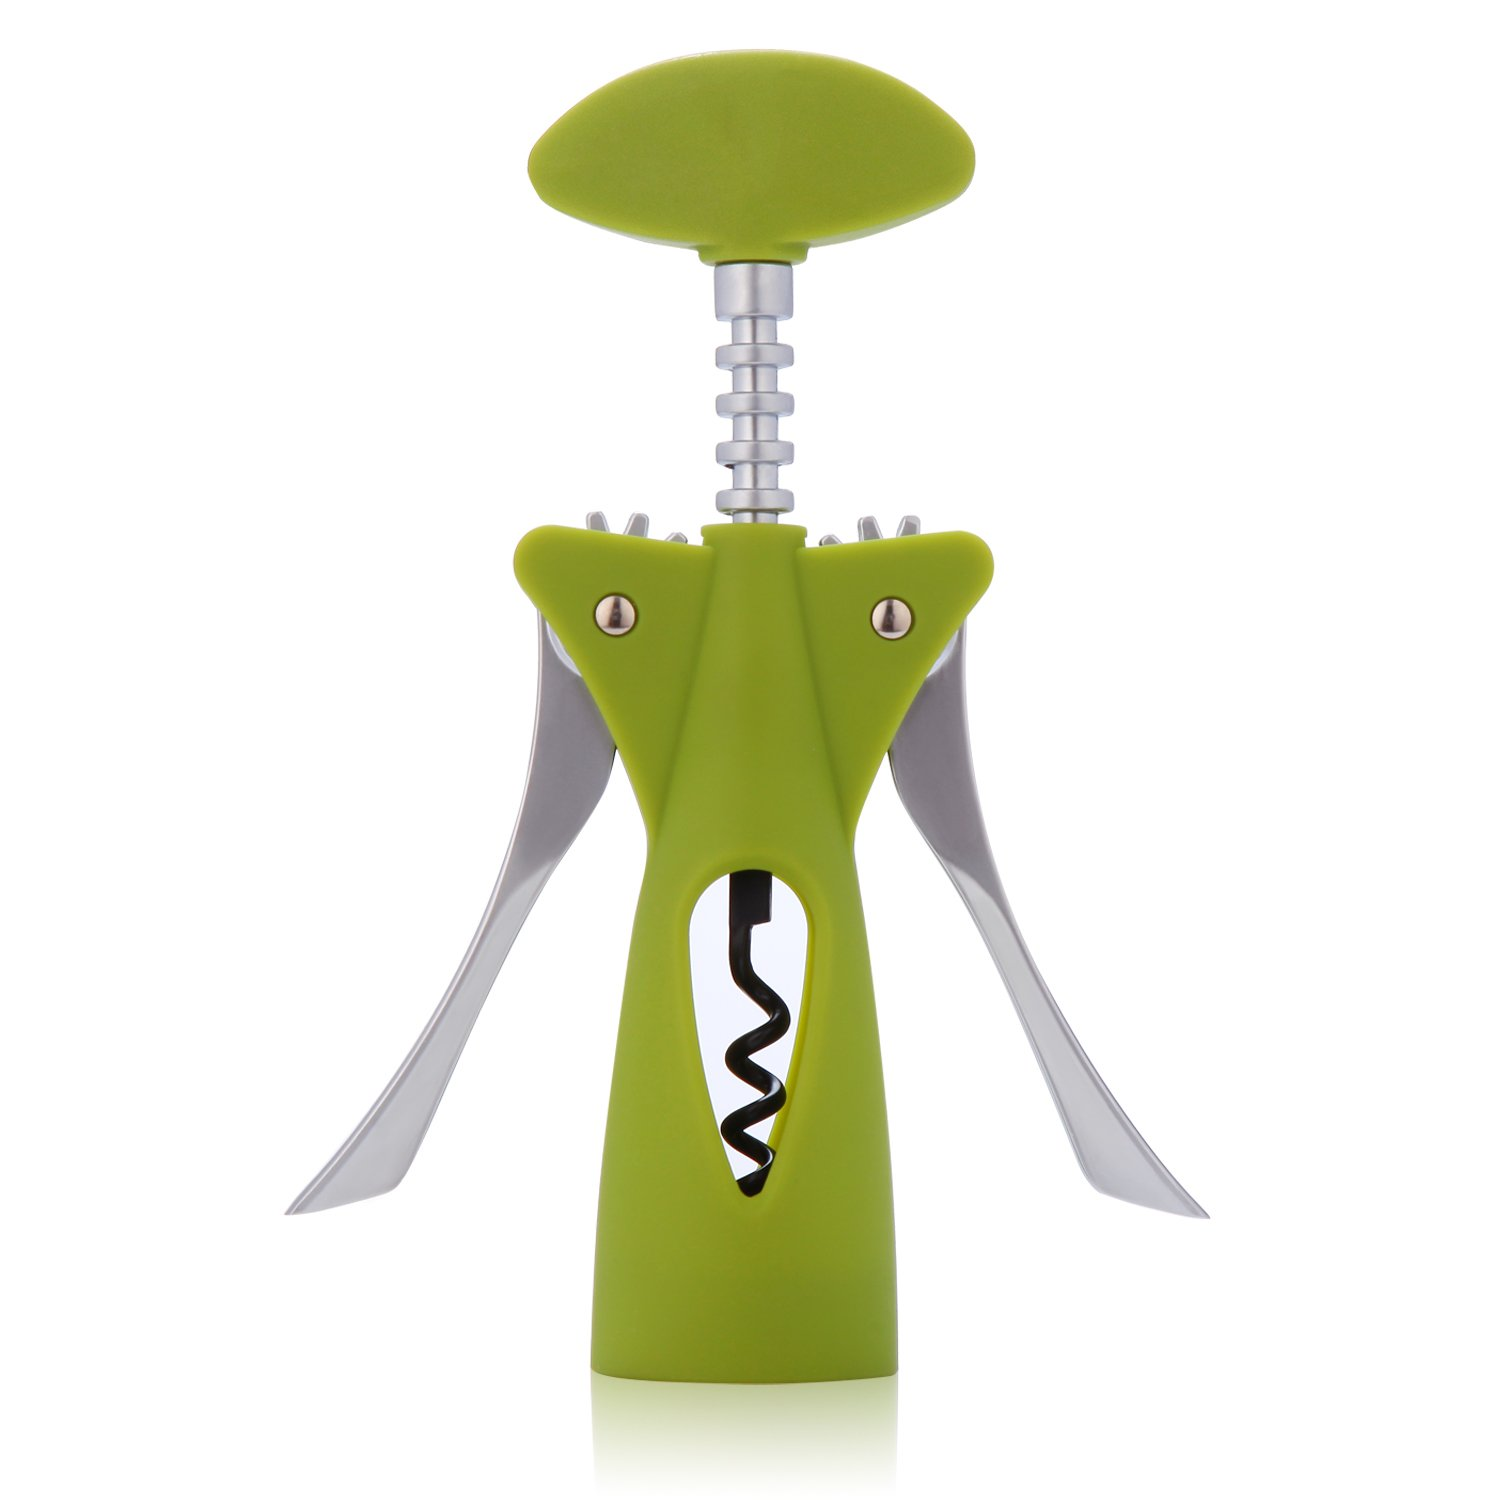 GOTTA Wine Opener Wing Corkscrew Professional Portable Corkscrew Bottle Opener Sommelier Bartenders Waiters for Rubber Synthetic Corks, Yellowish Green by GOTTA